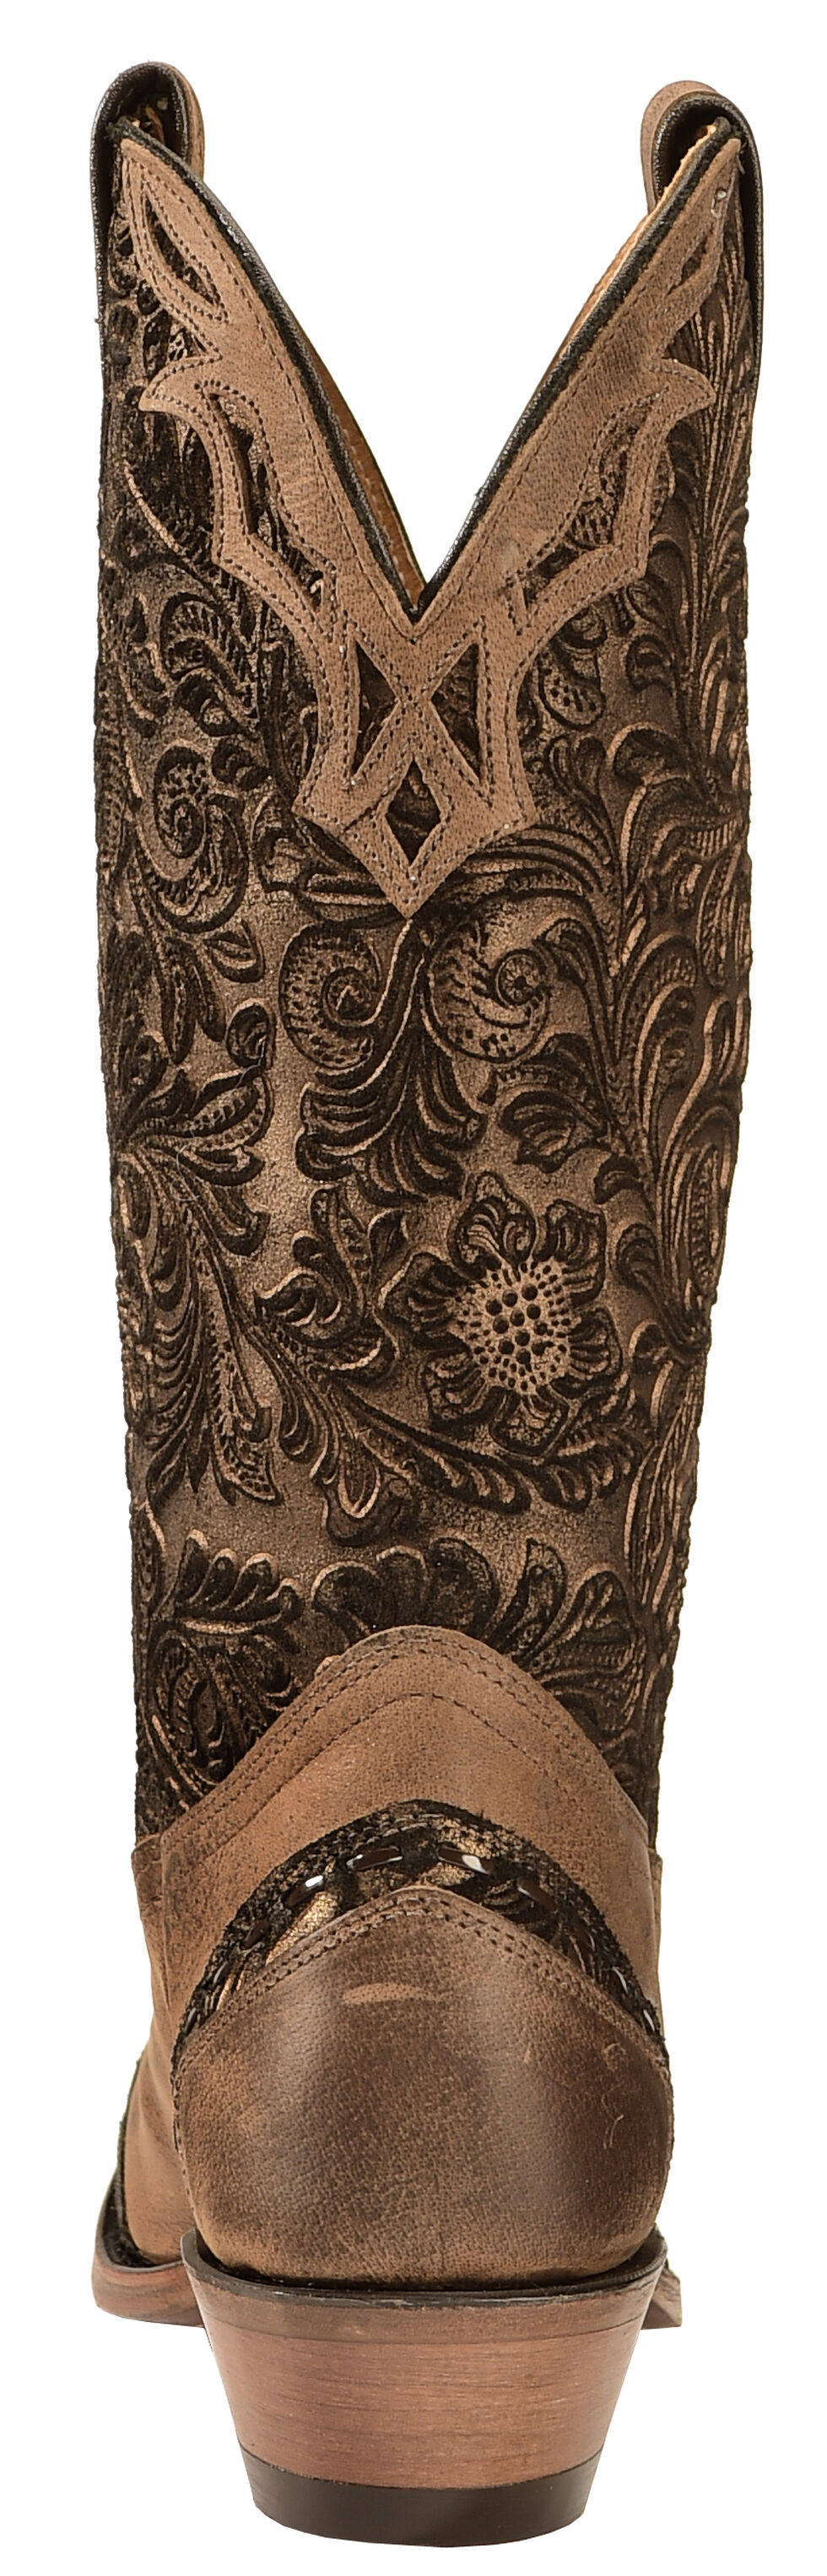 Boulet Fancy Hand Tooled Inlay Cowgirl Boots - Snip Toe, Tobacco, hi-res